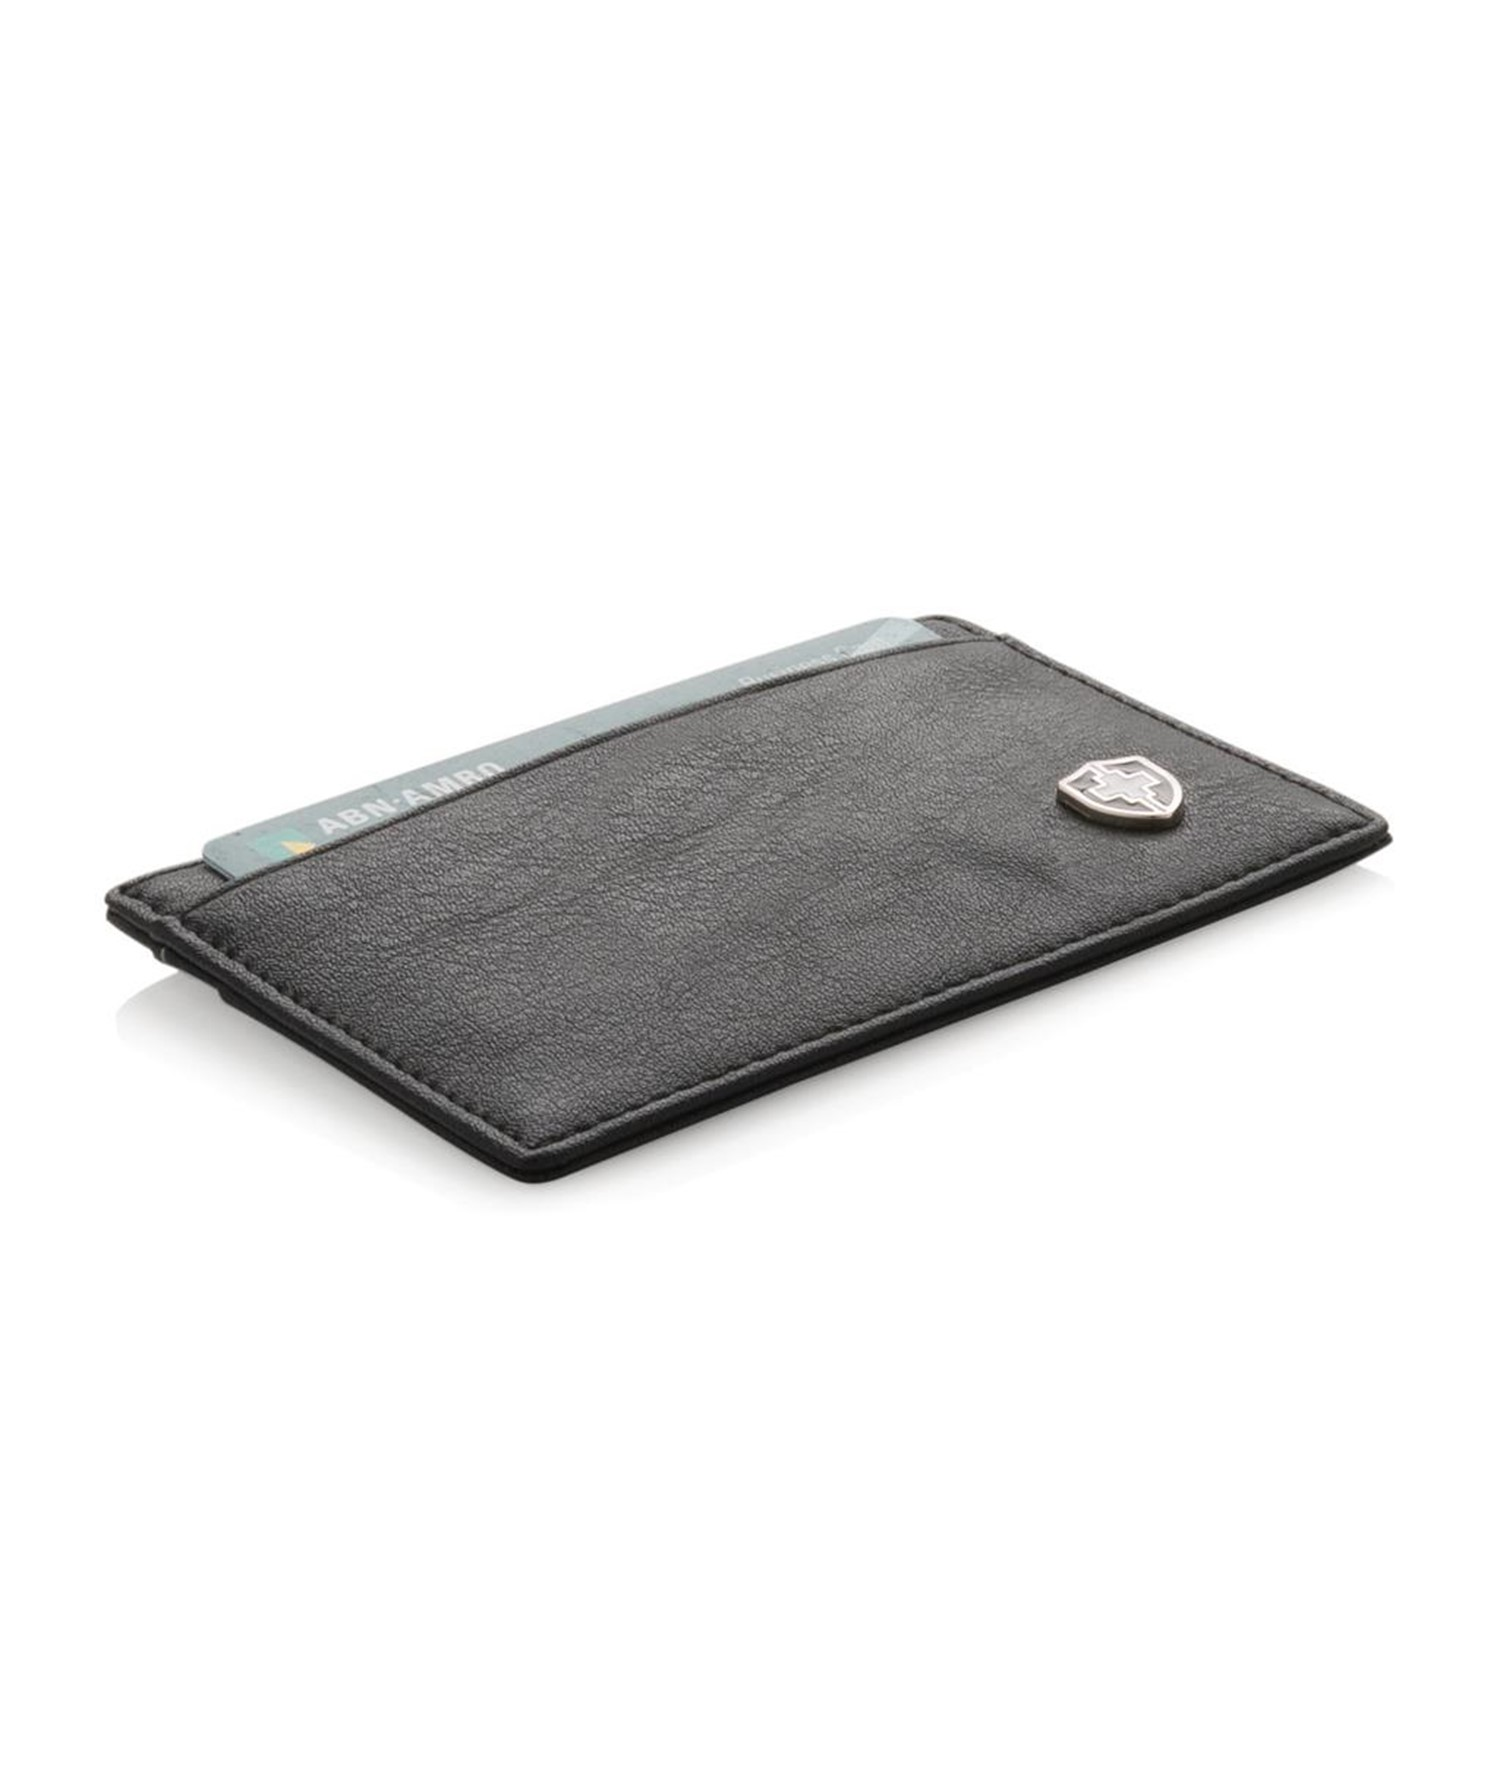 SWISS PEAK RFID ANTI-SKIMMING CARD HOLDER